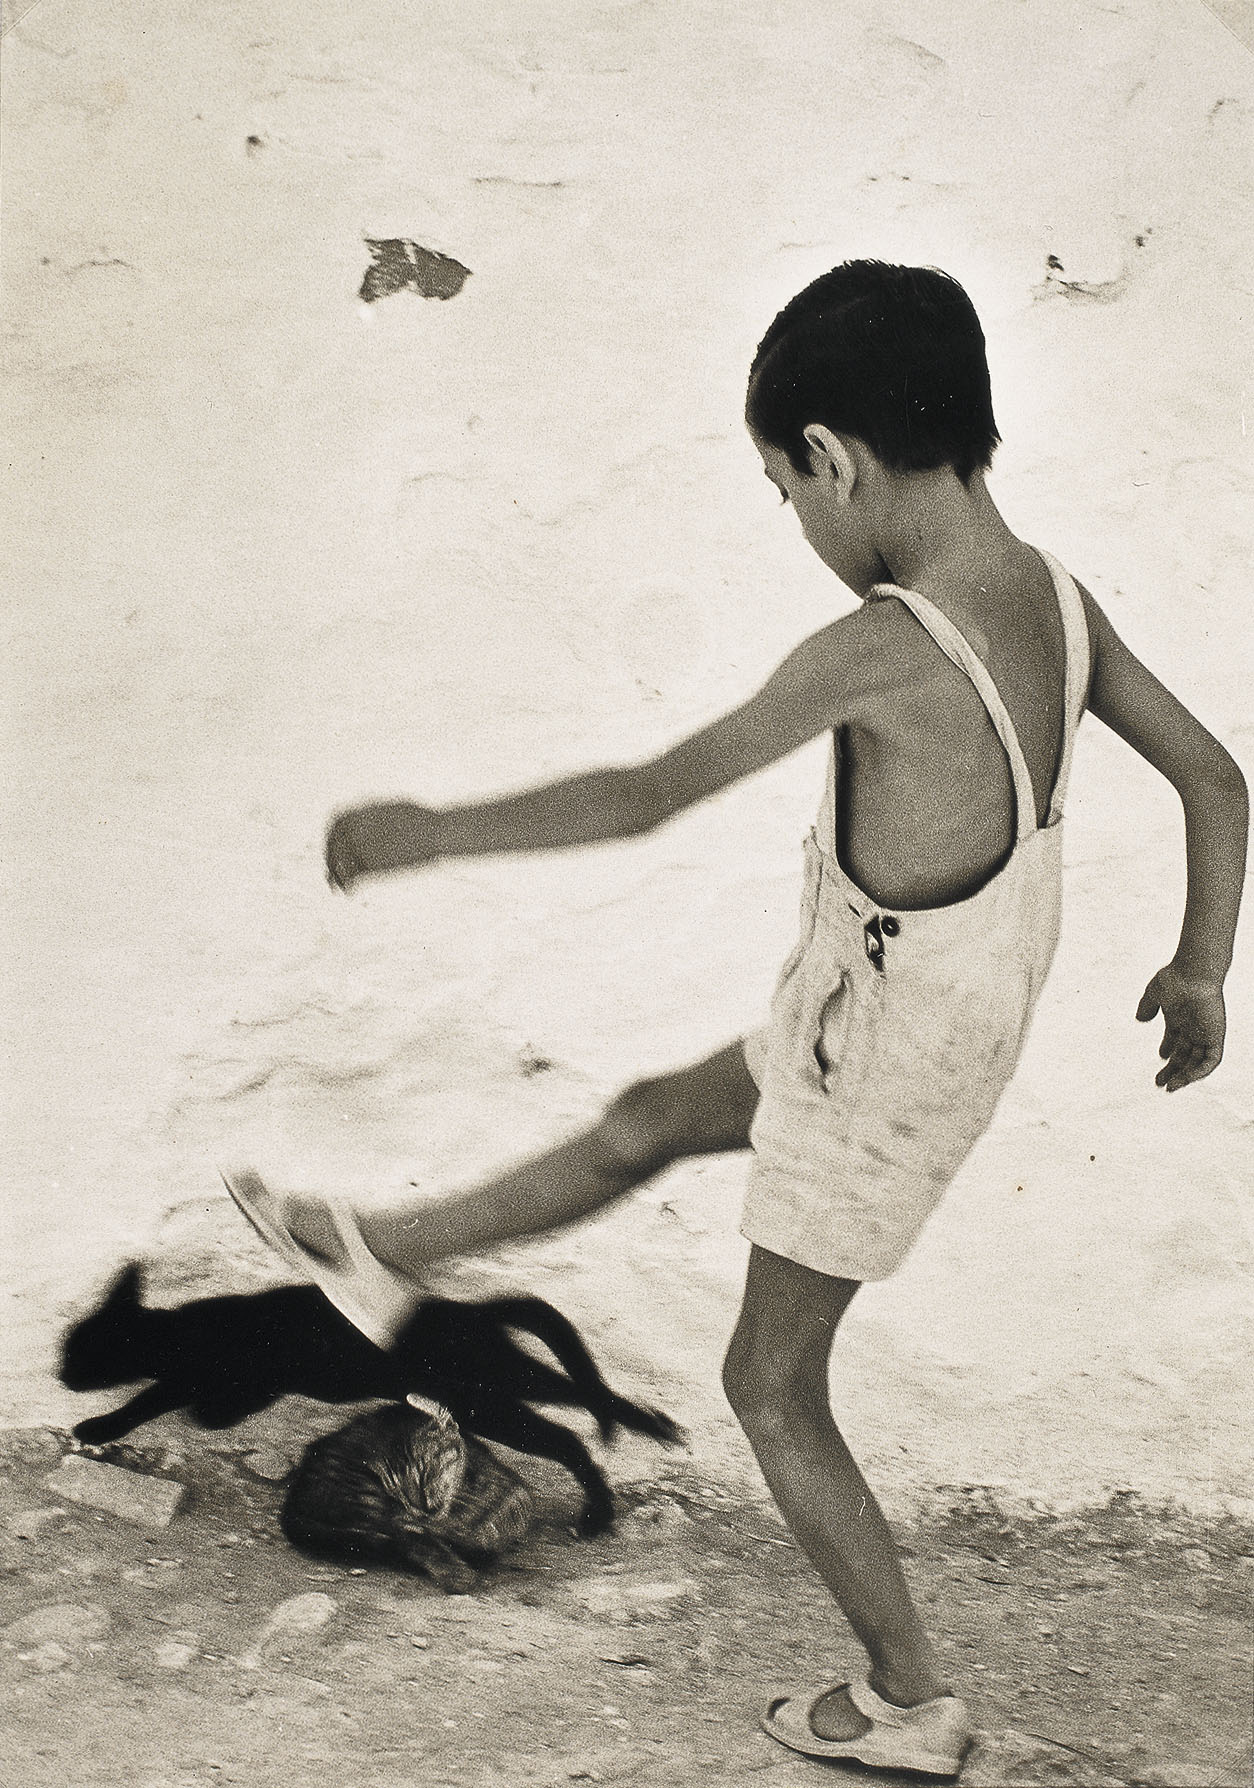 Oriol Maspons, Boy in Ibiza, 1954